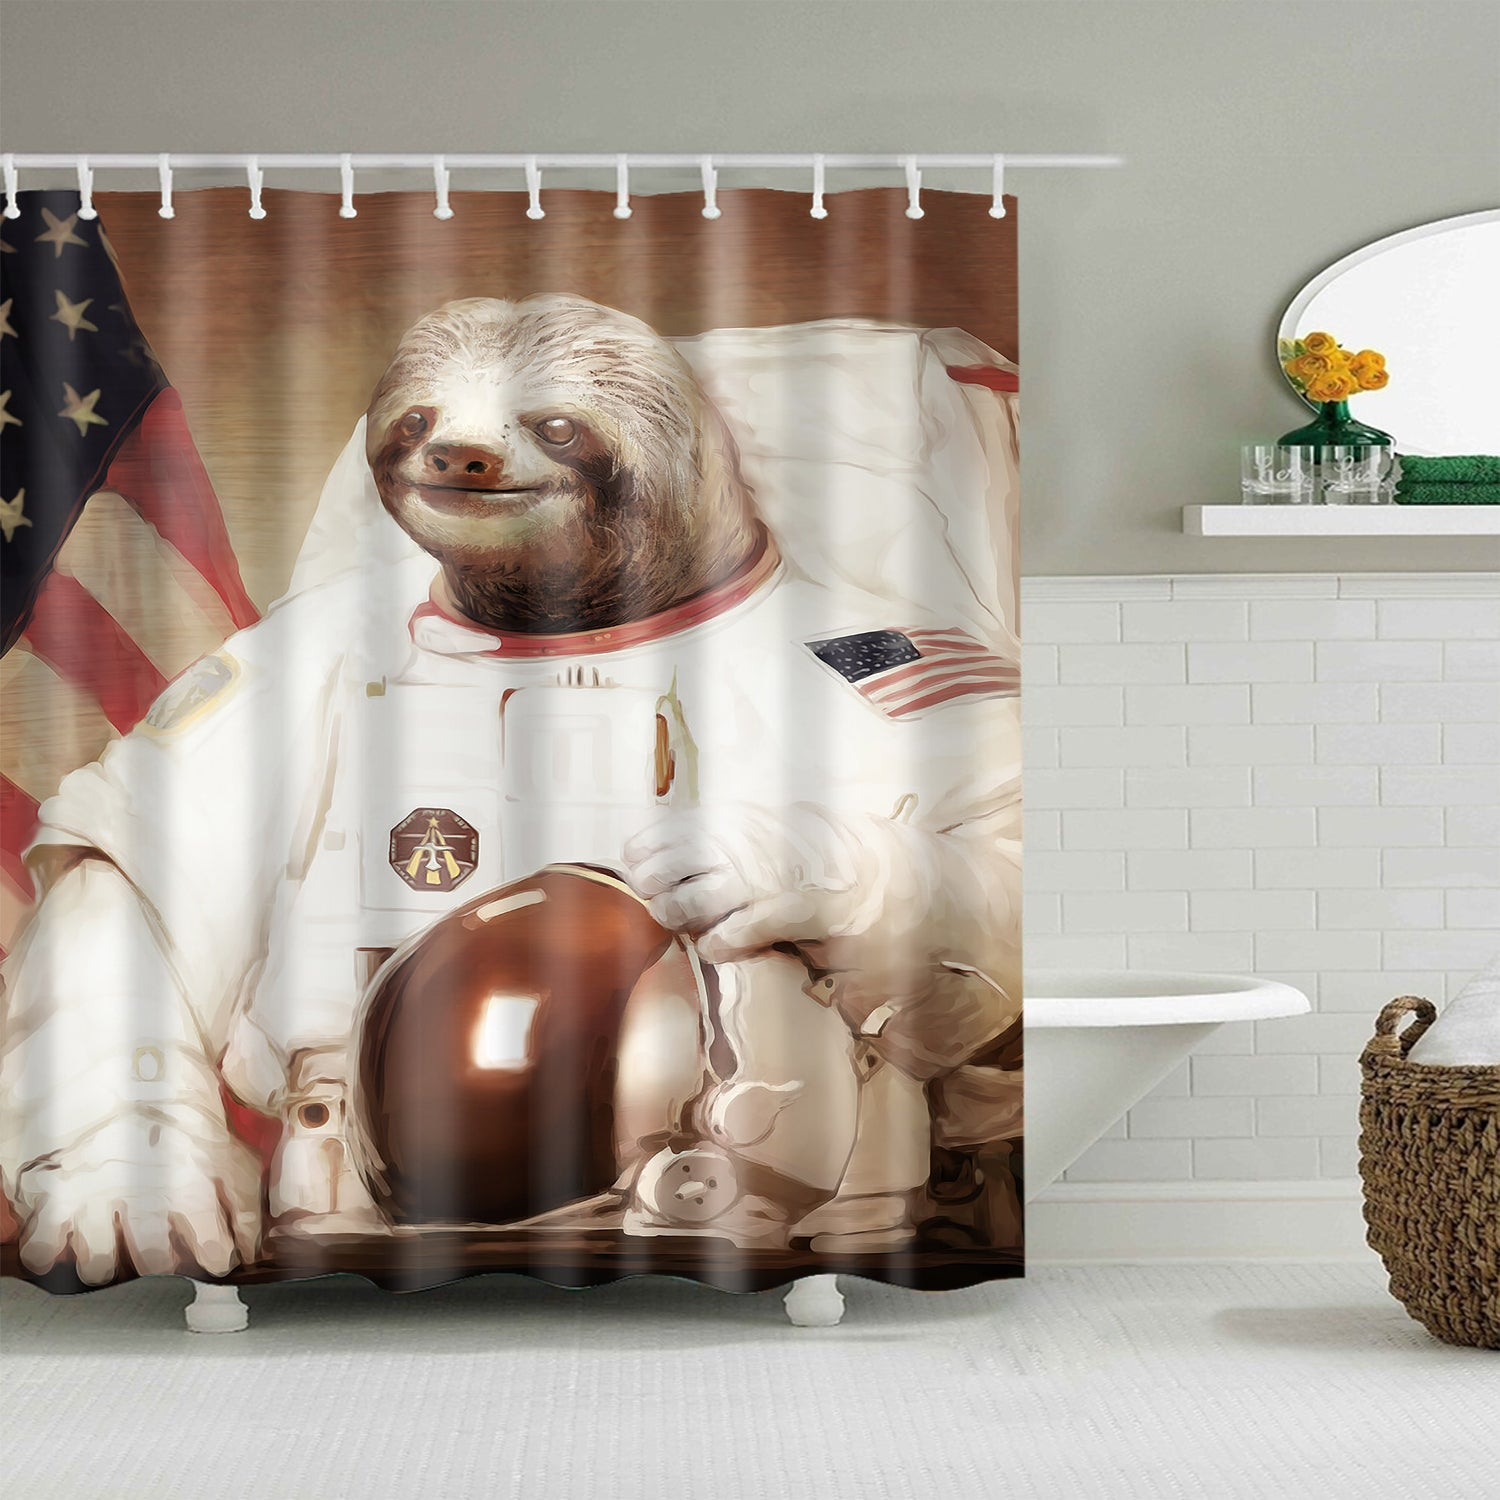 Funny Astronaut Sloth Art NASA Moon Landing Shower Curtain